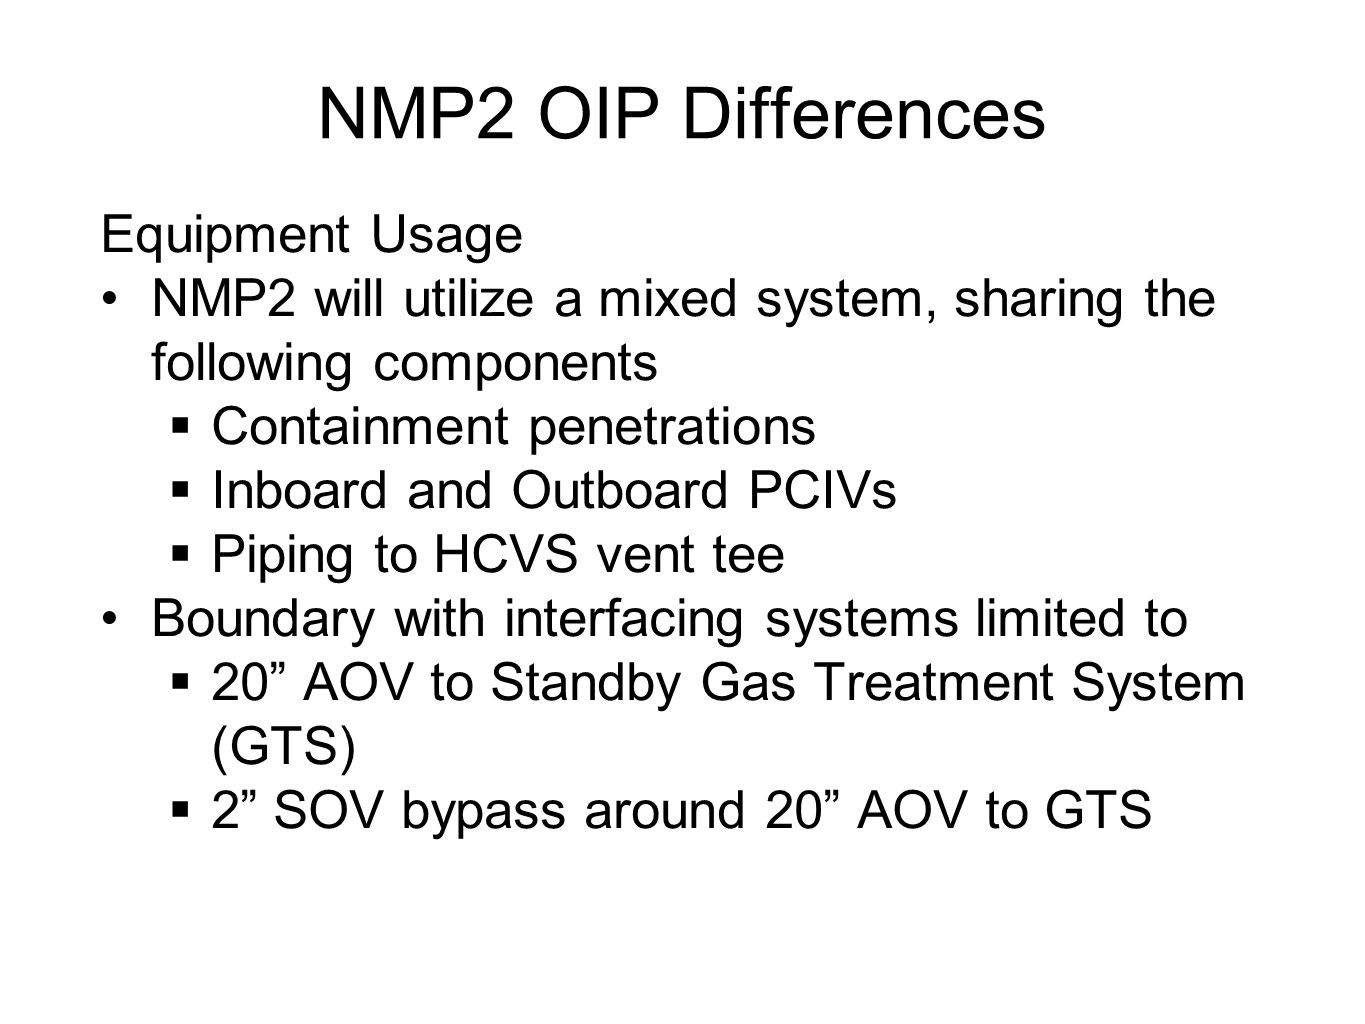 NMP2 OIP Differences Equipment Usage